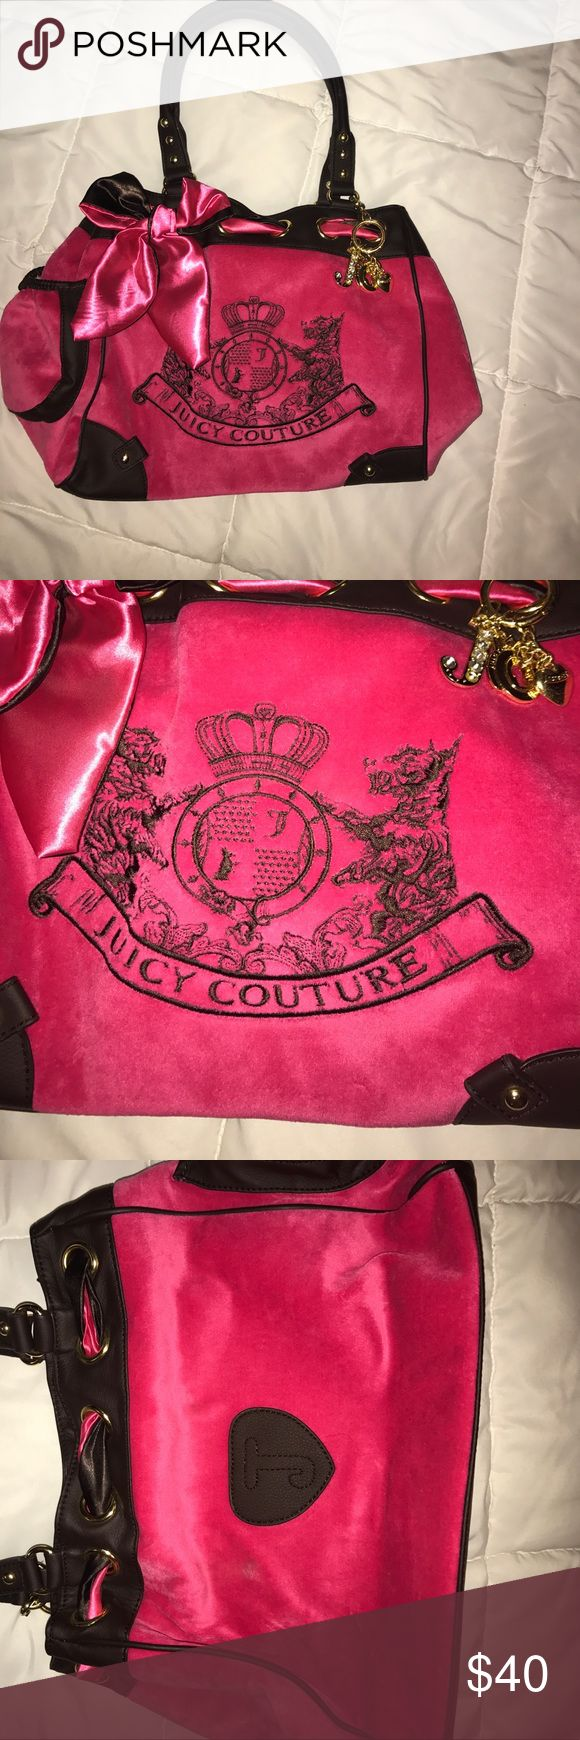 Hot pink juicy purse NWOT Super cute Juicy Couture purse! Never used! Lots of room for the woman who loves carrying tons of stuff like I do! Juicy Couture Bags